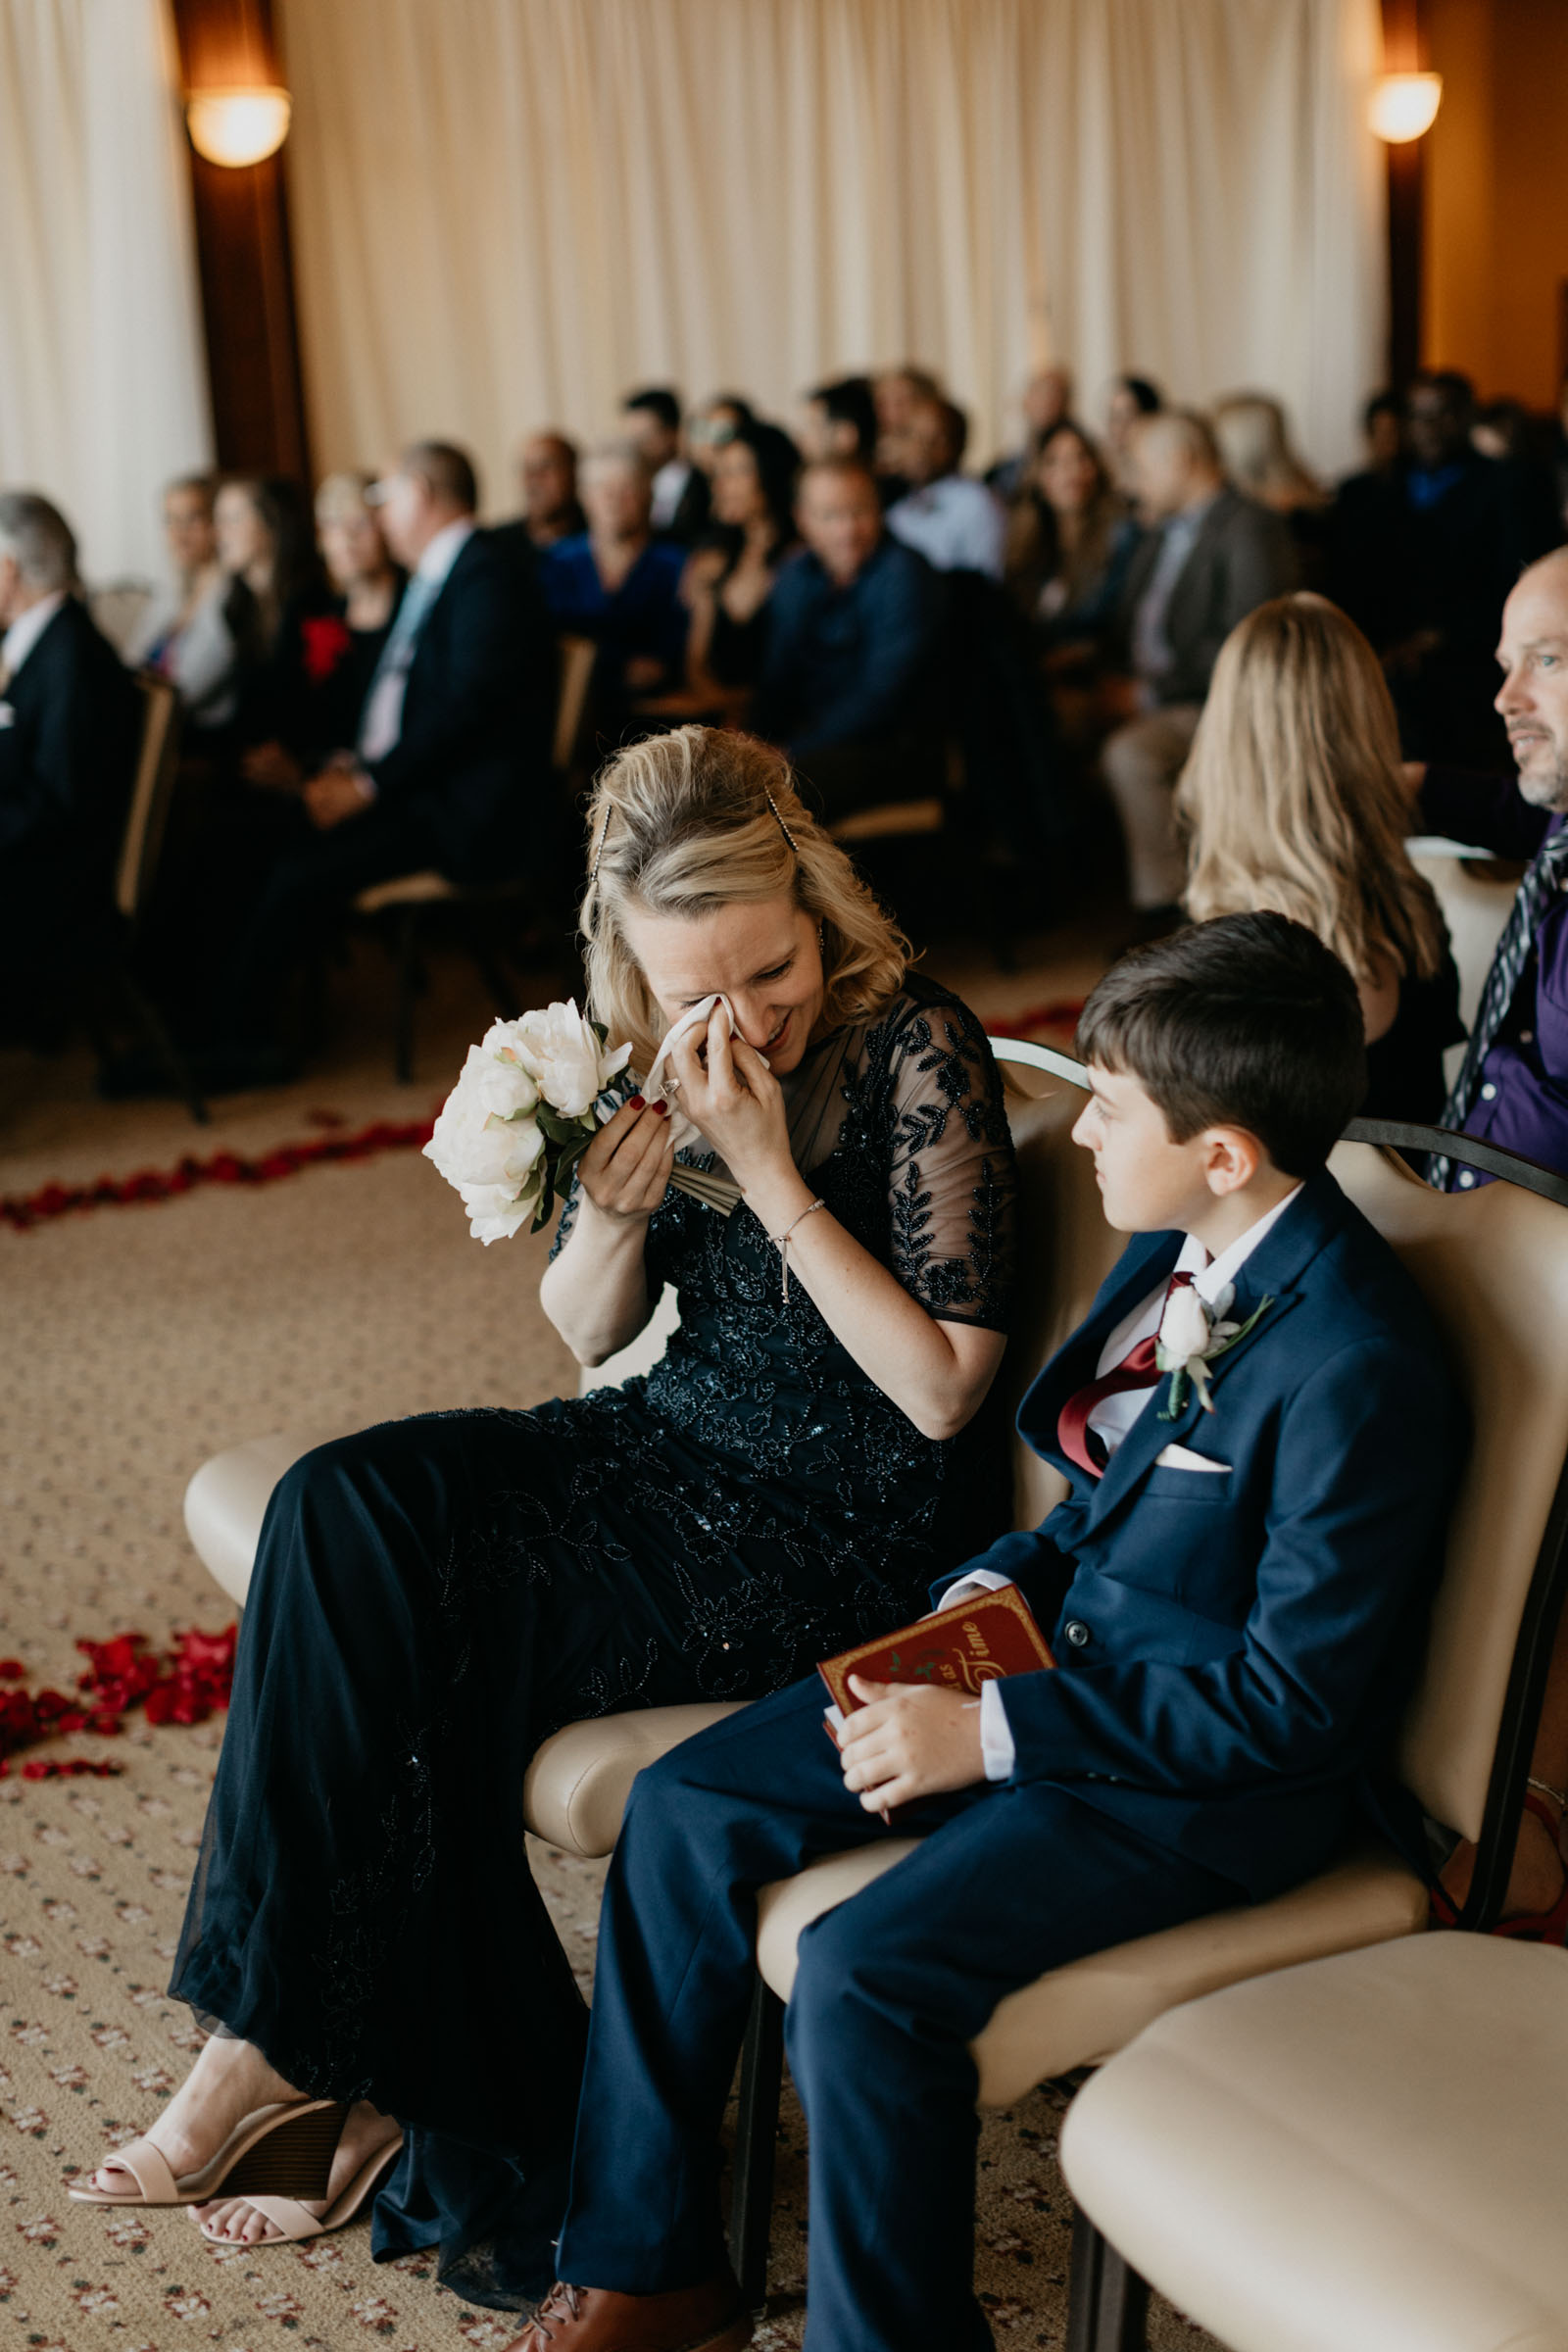 Emotional mom crying during daughters wedding ceremony